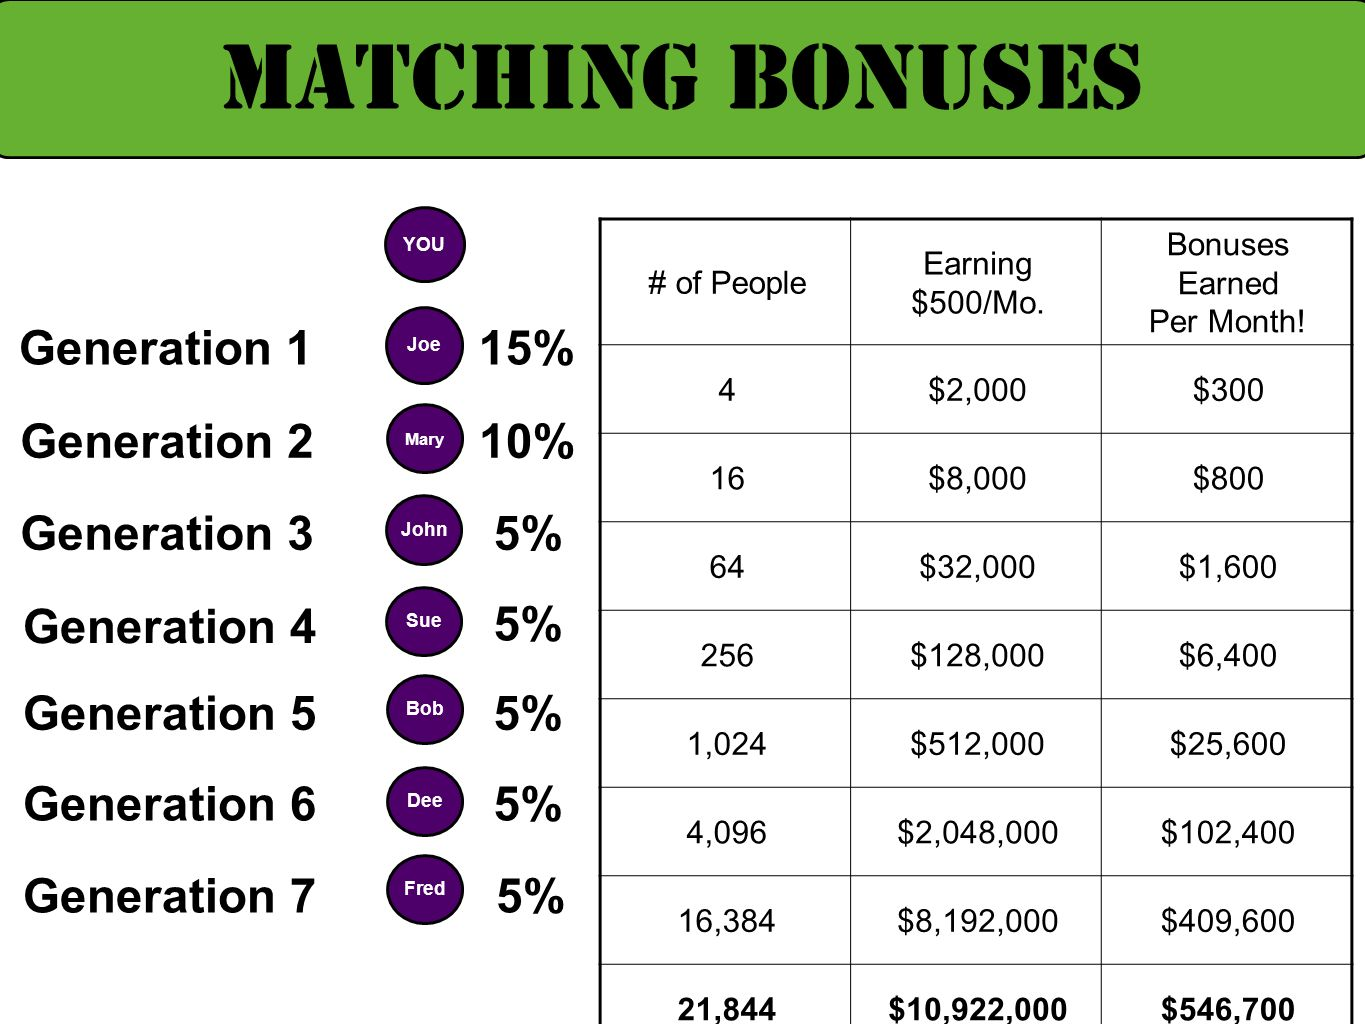 YOU Joe Generation 115% MATCHING BONUSES Mary 10%Generation 2 Fred Generation 75% John 5%Generation 3 Sue Generation 4 5% Bob Generation 55% Dee Gener